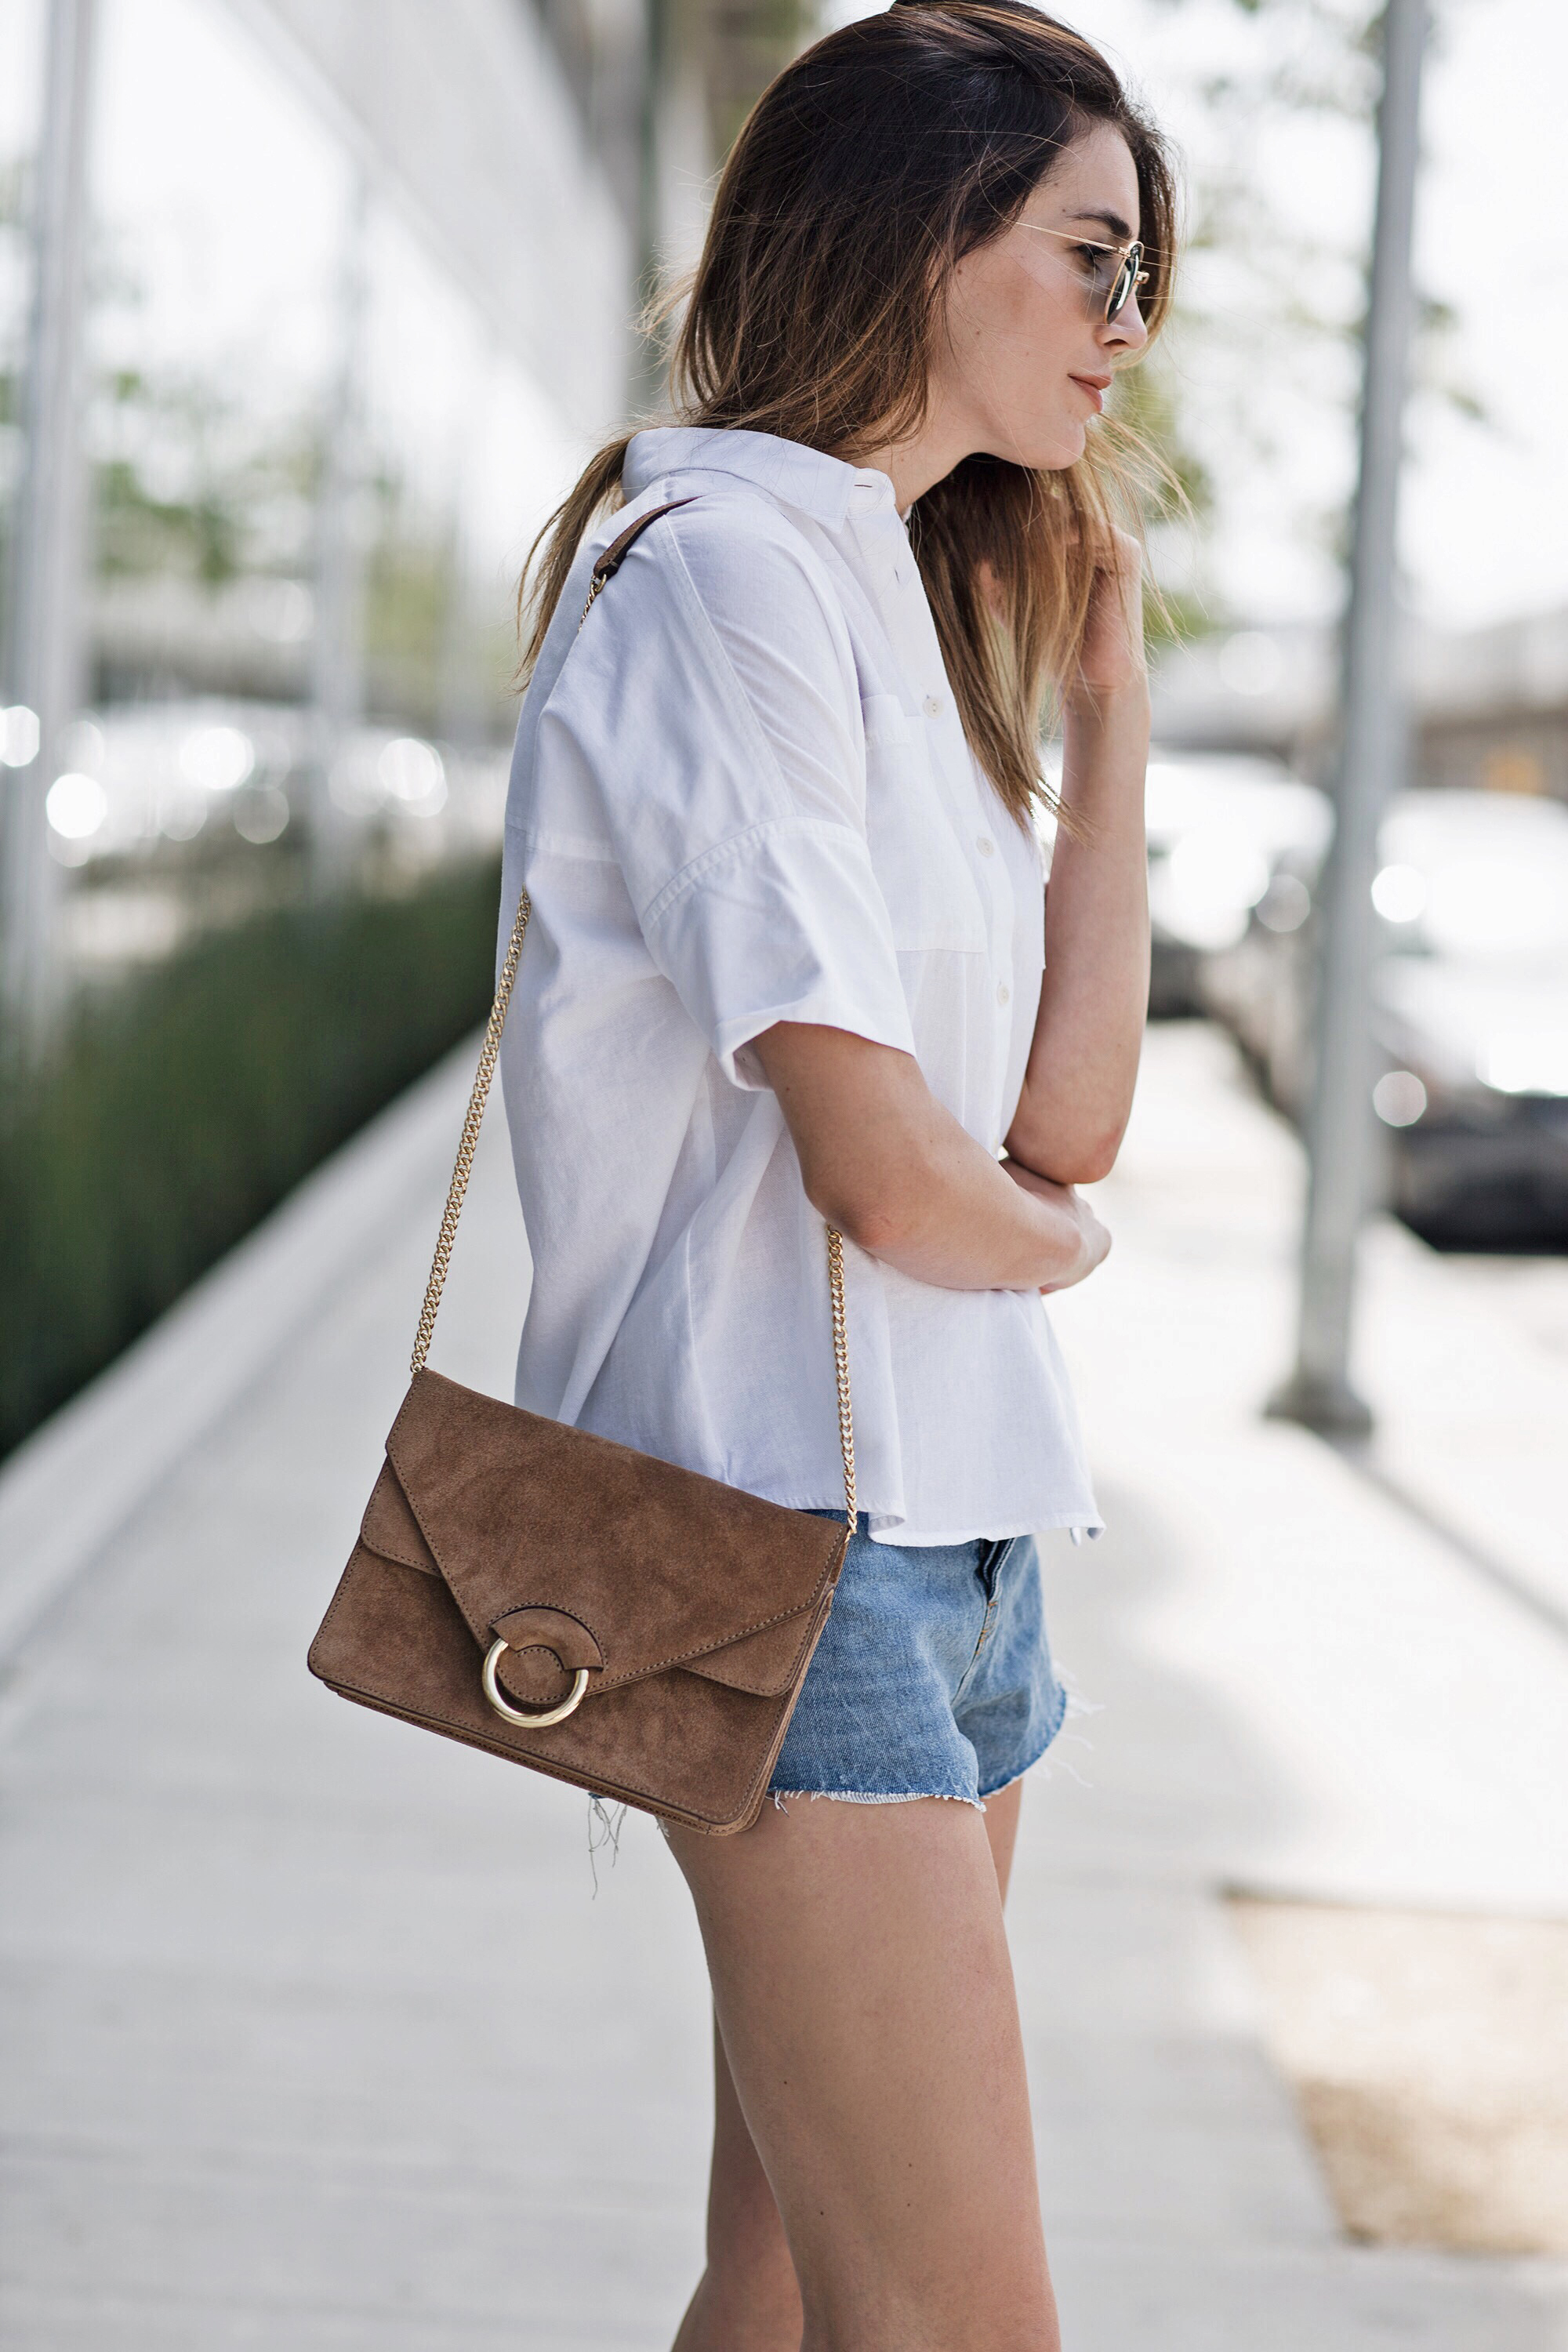 Suede Tan Buckle Bag